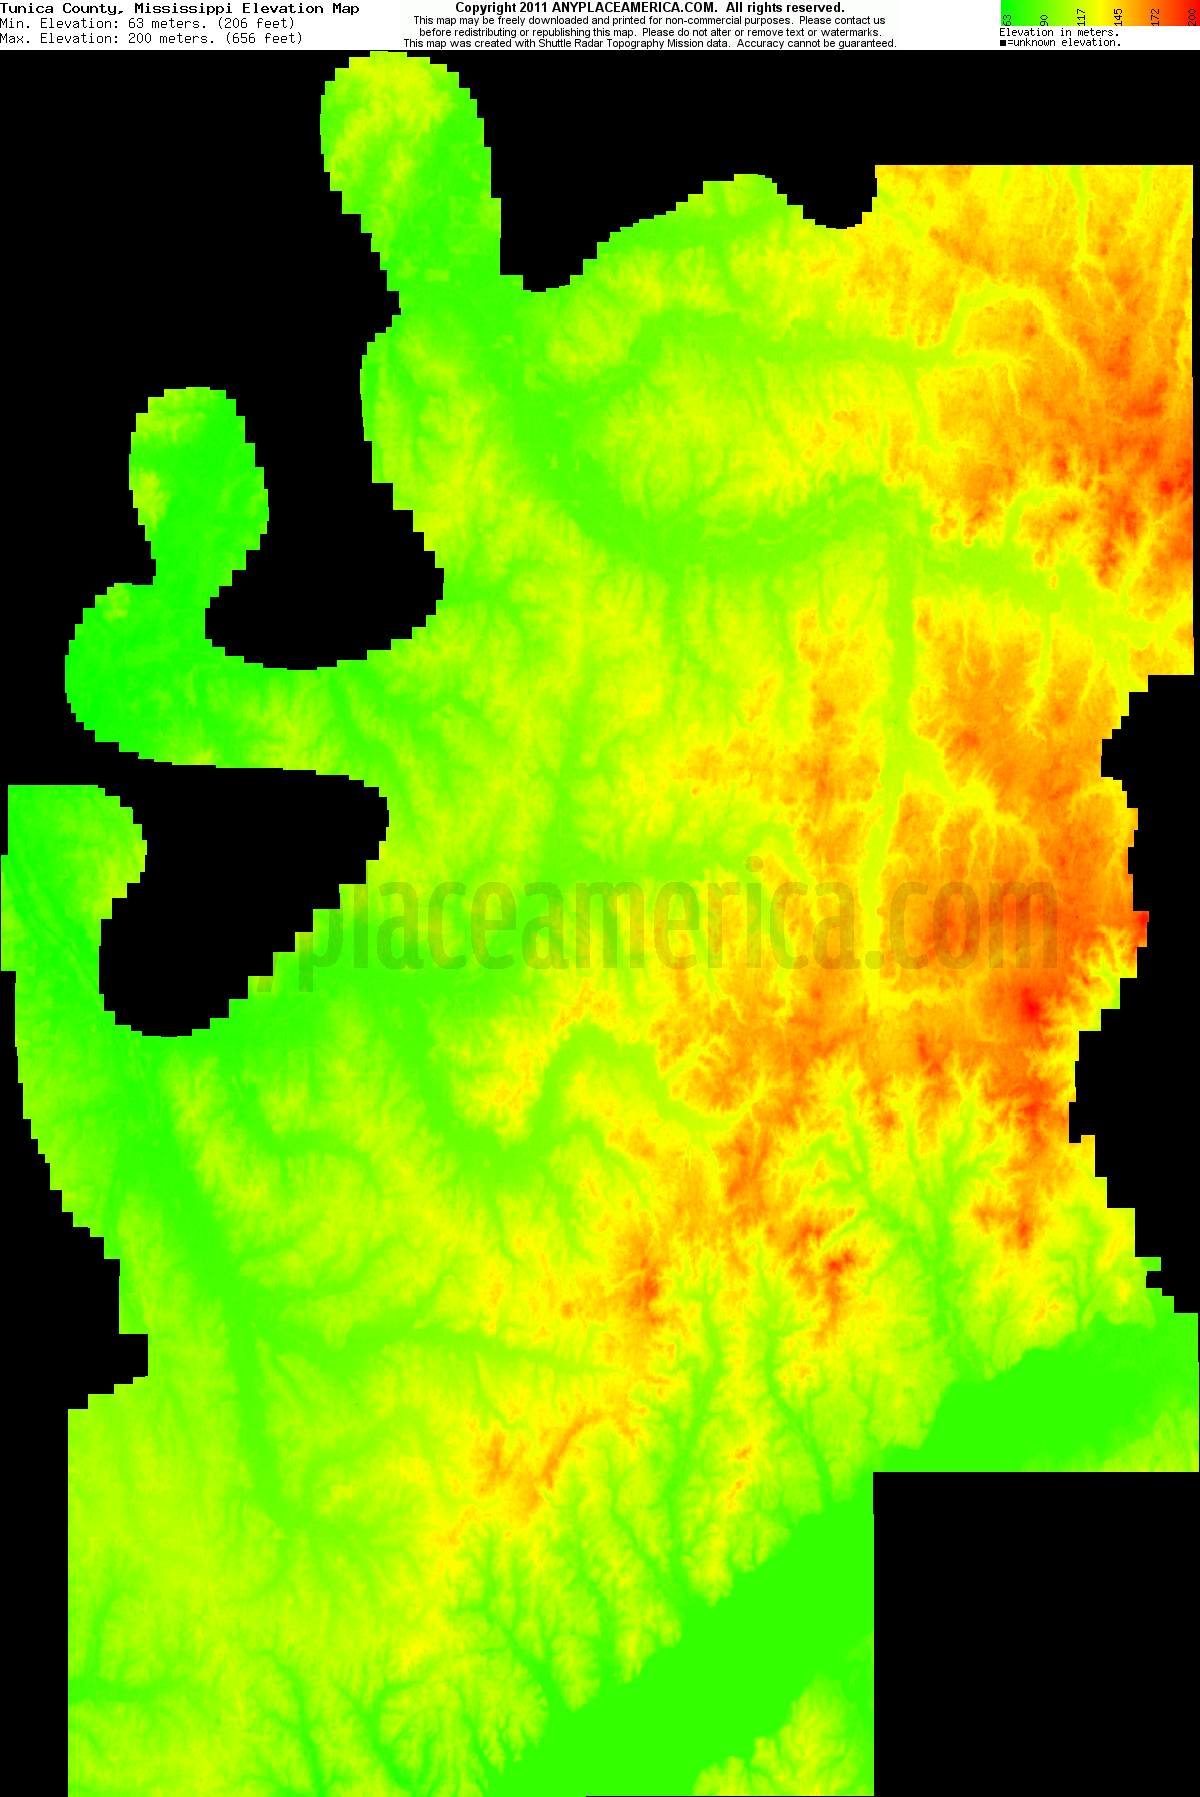 Mississippi tunica county dundee - Download Tunica County Elevation Map